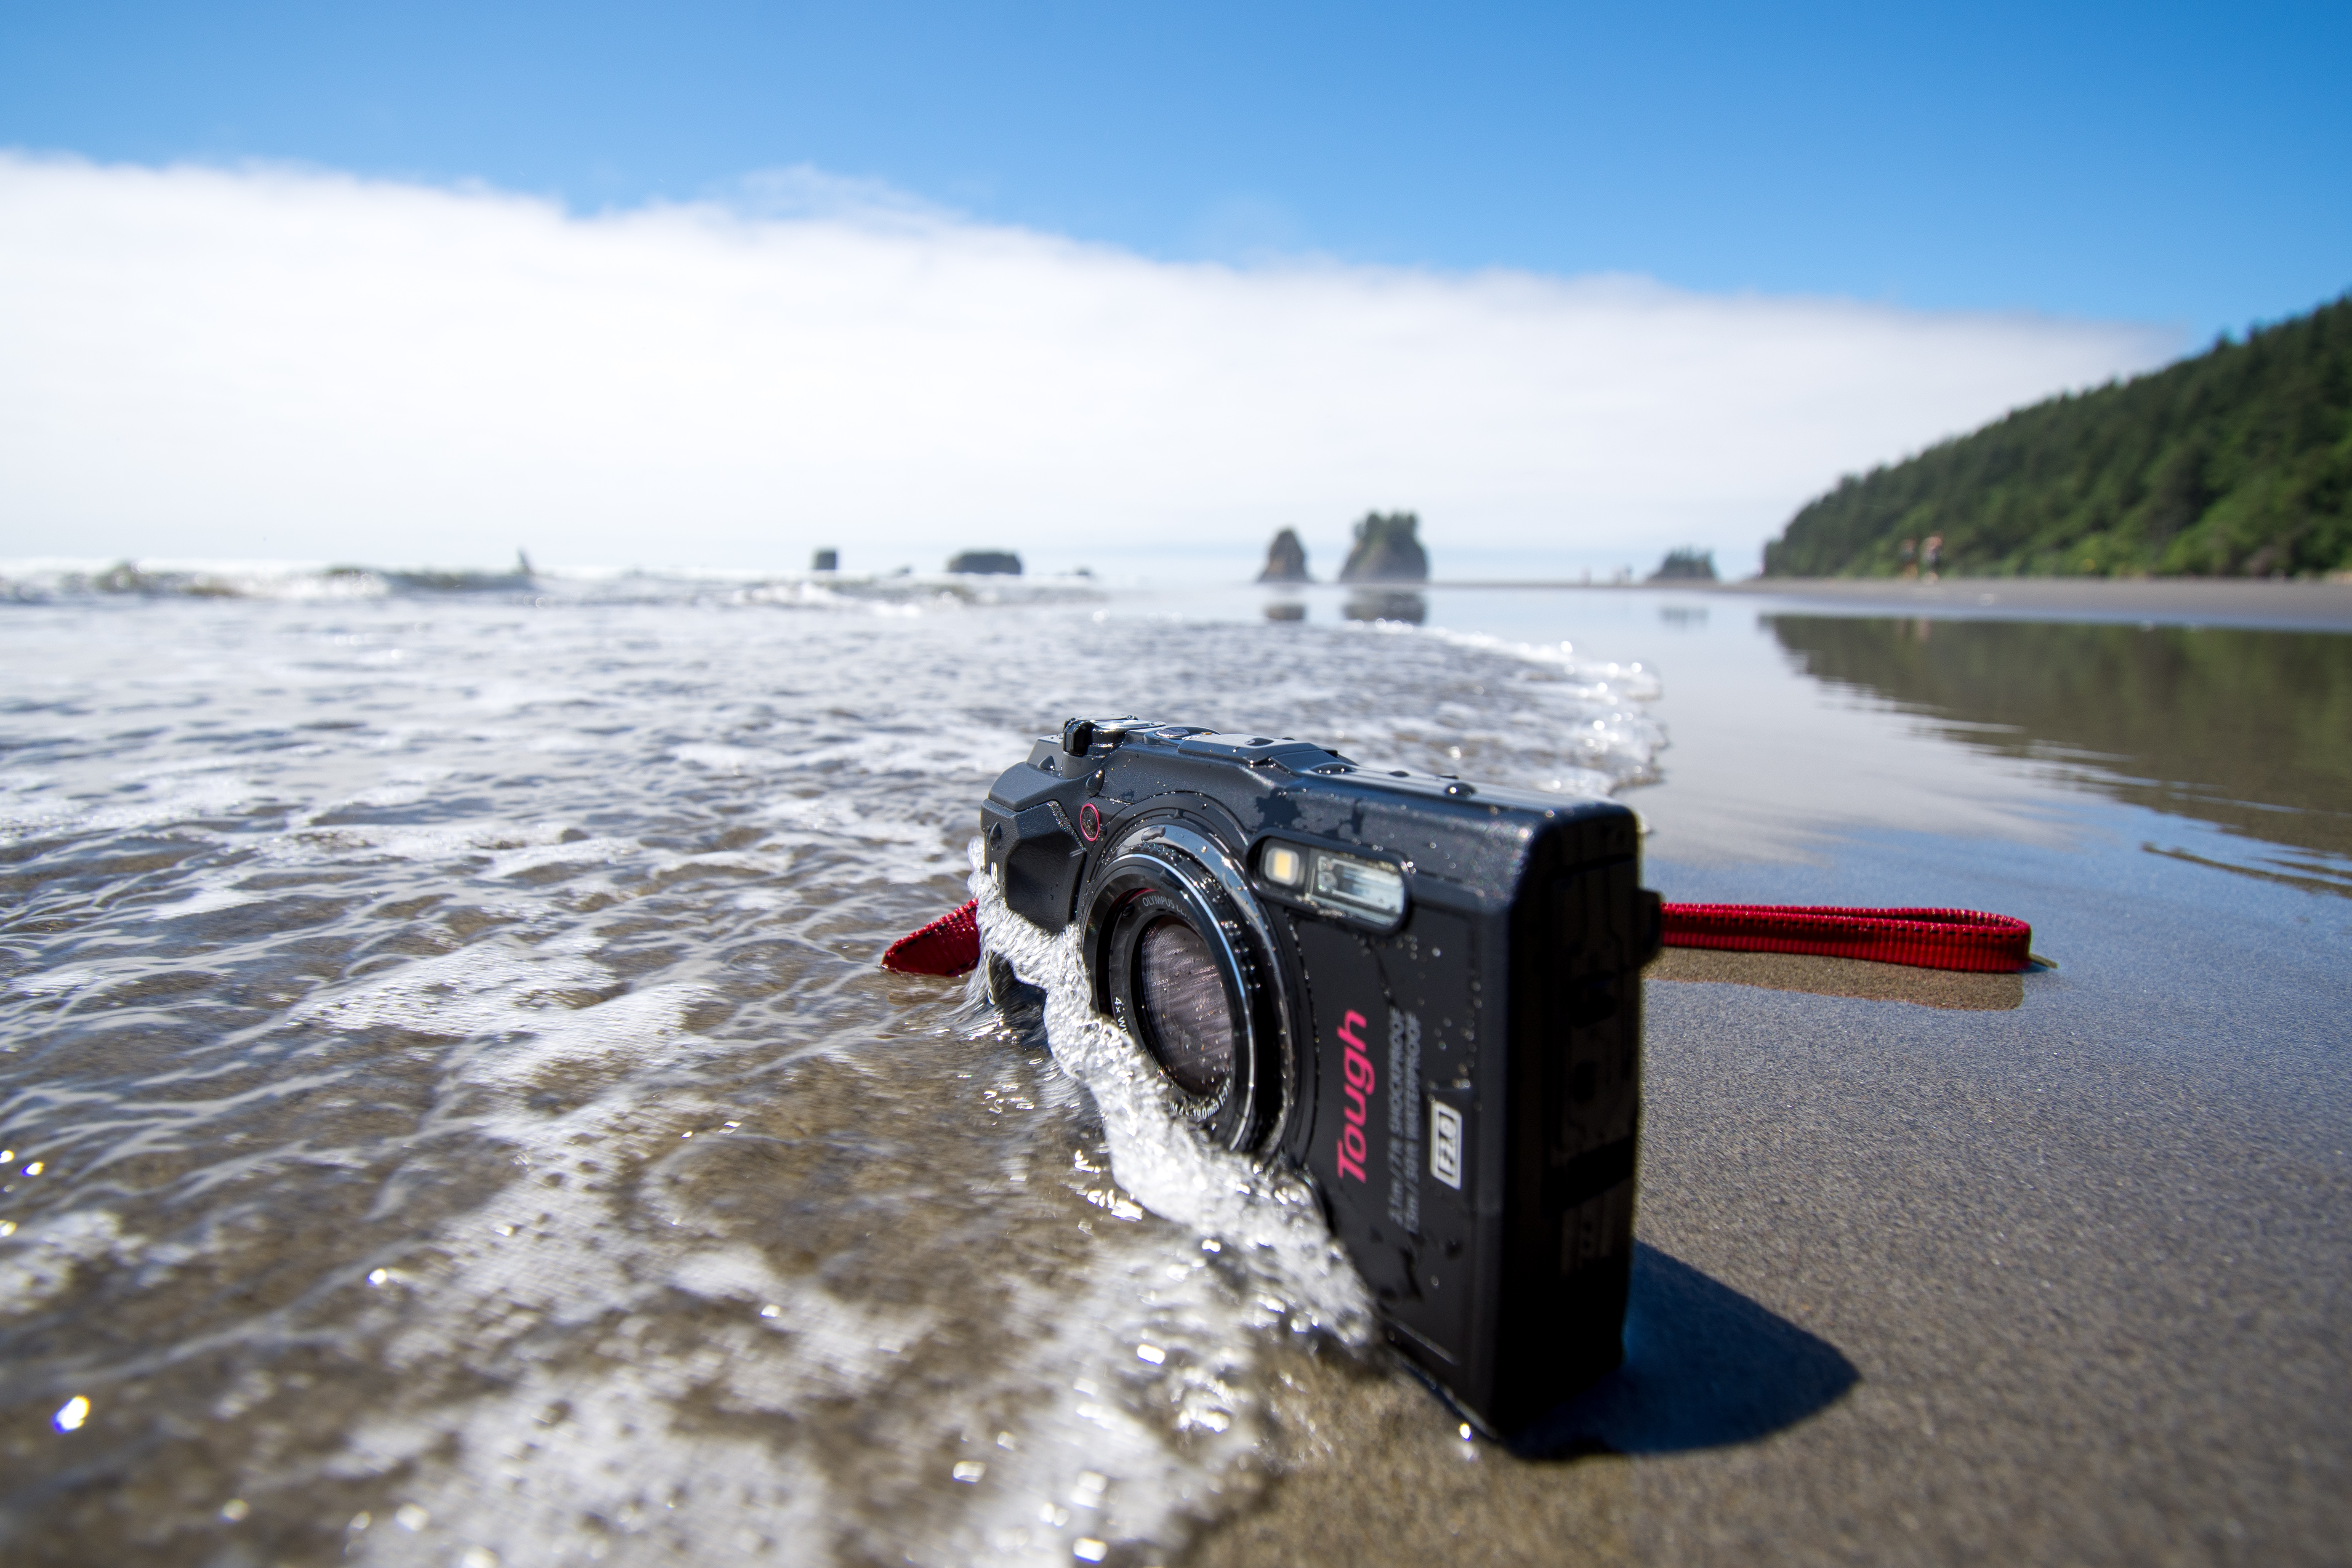 Washington State S Pacific Coastal Beaches Are Quite The Contrast To What You Usually Find Around Puget Sound Near Seattle Pebbles Barnacled Rocks And